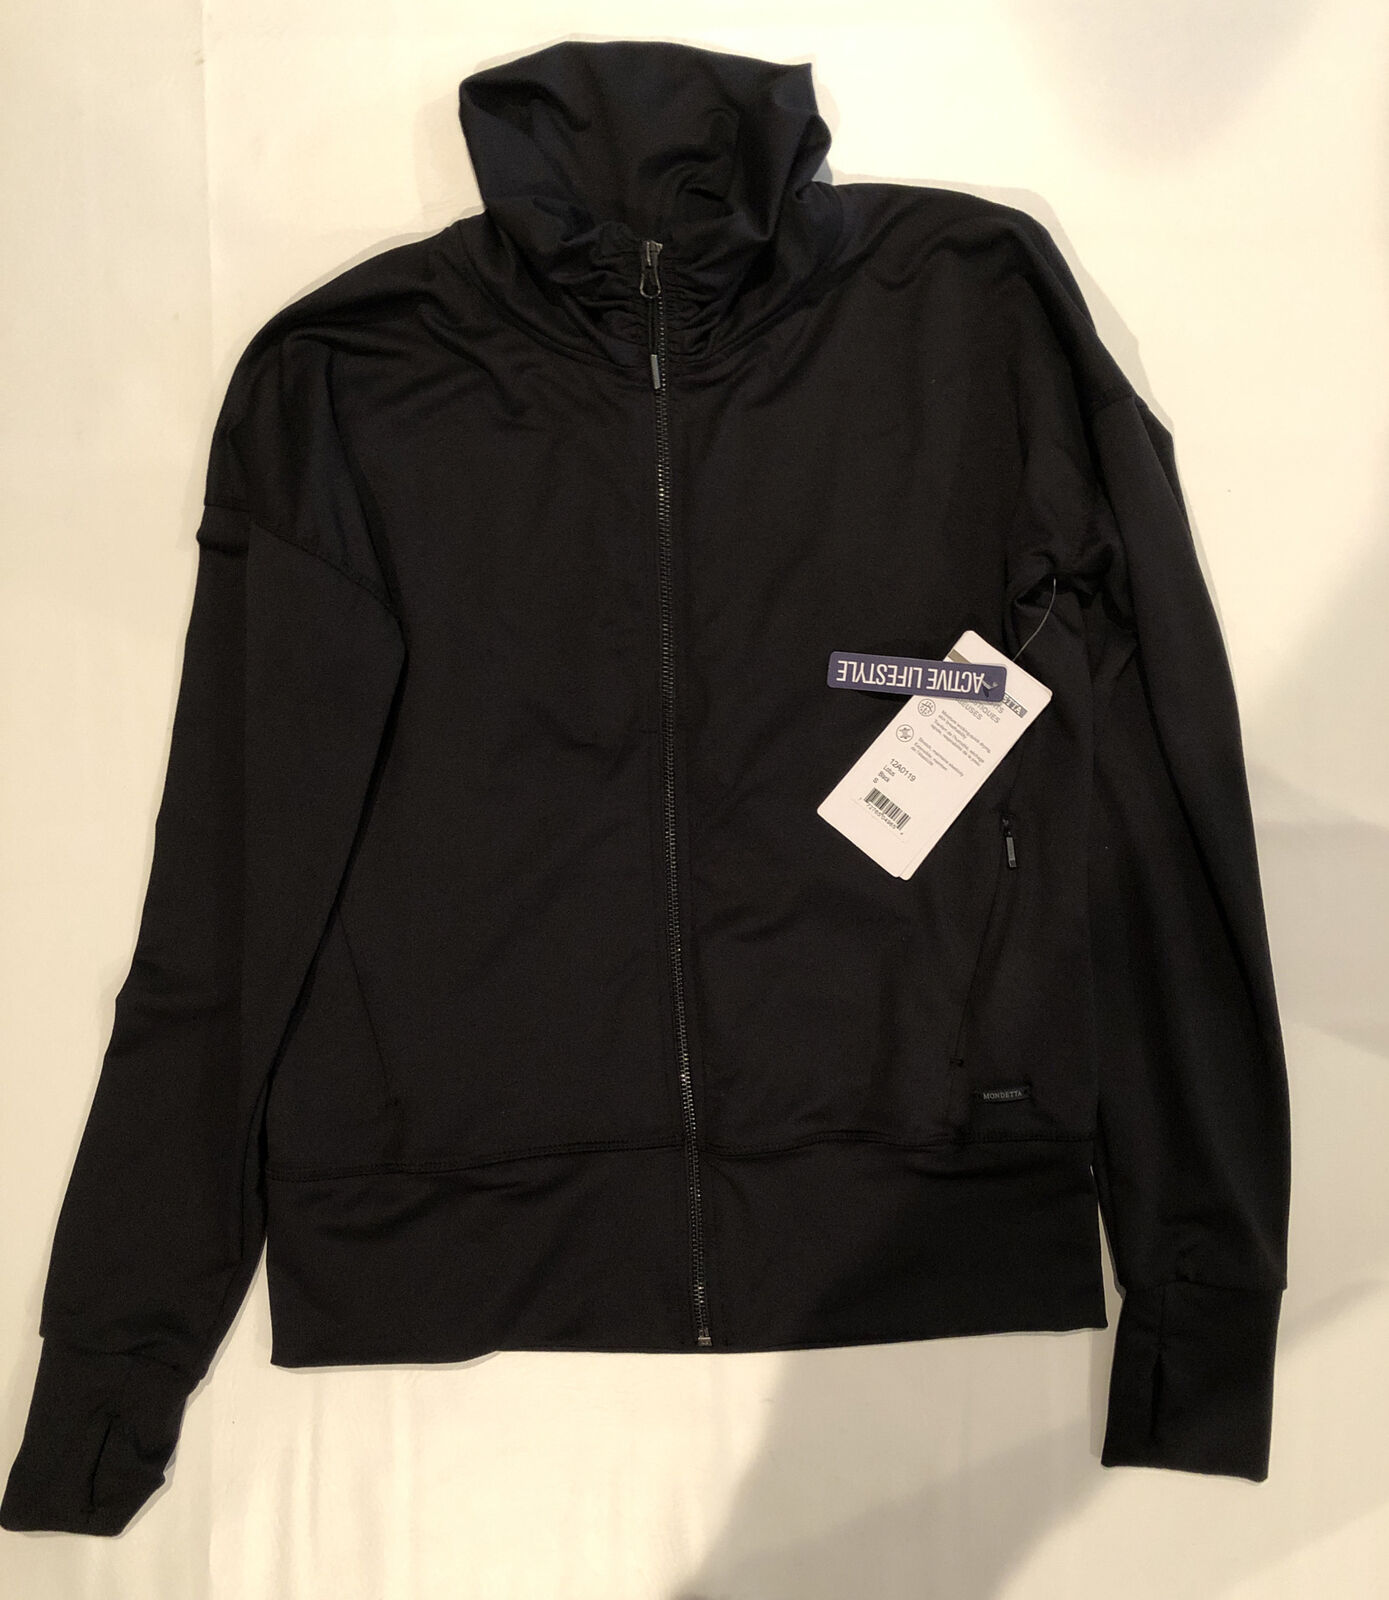 MONDETTA Small Active Jacket Zipper Black NWT pleated in the back DROP SLEEVES